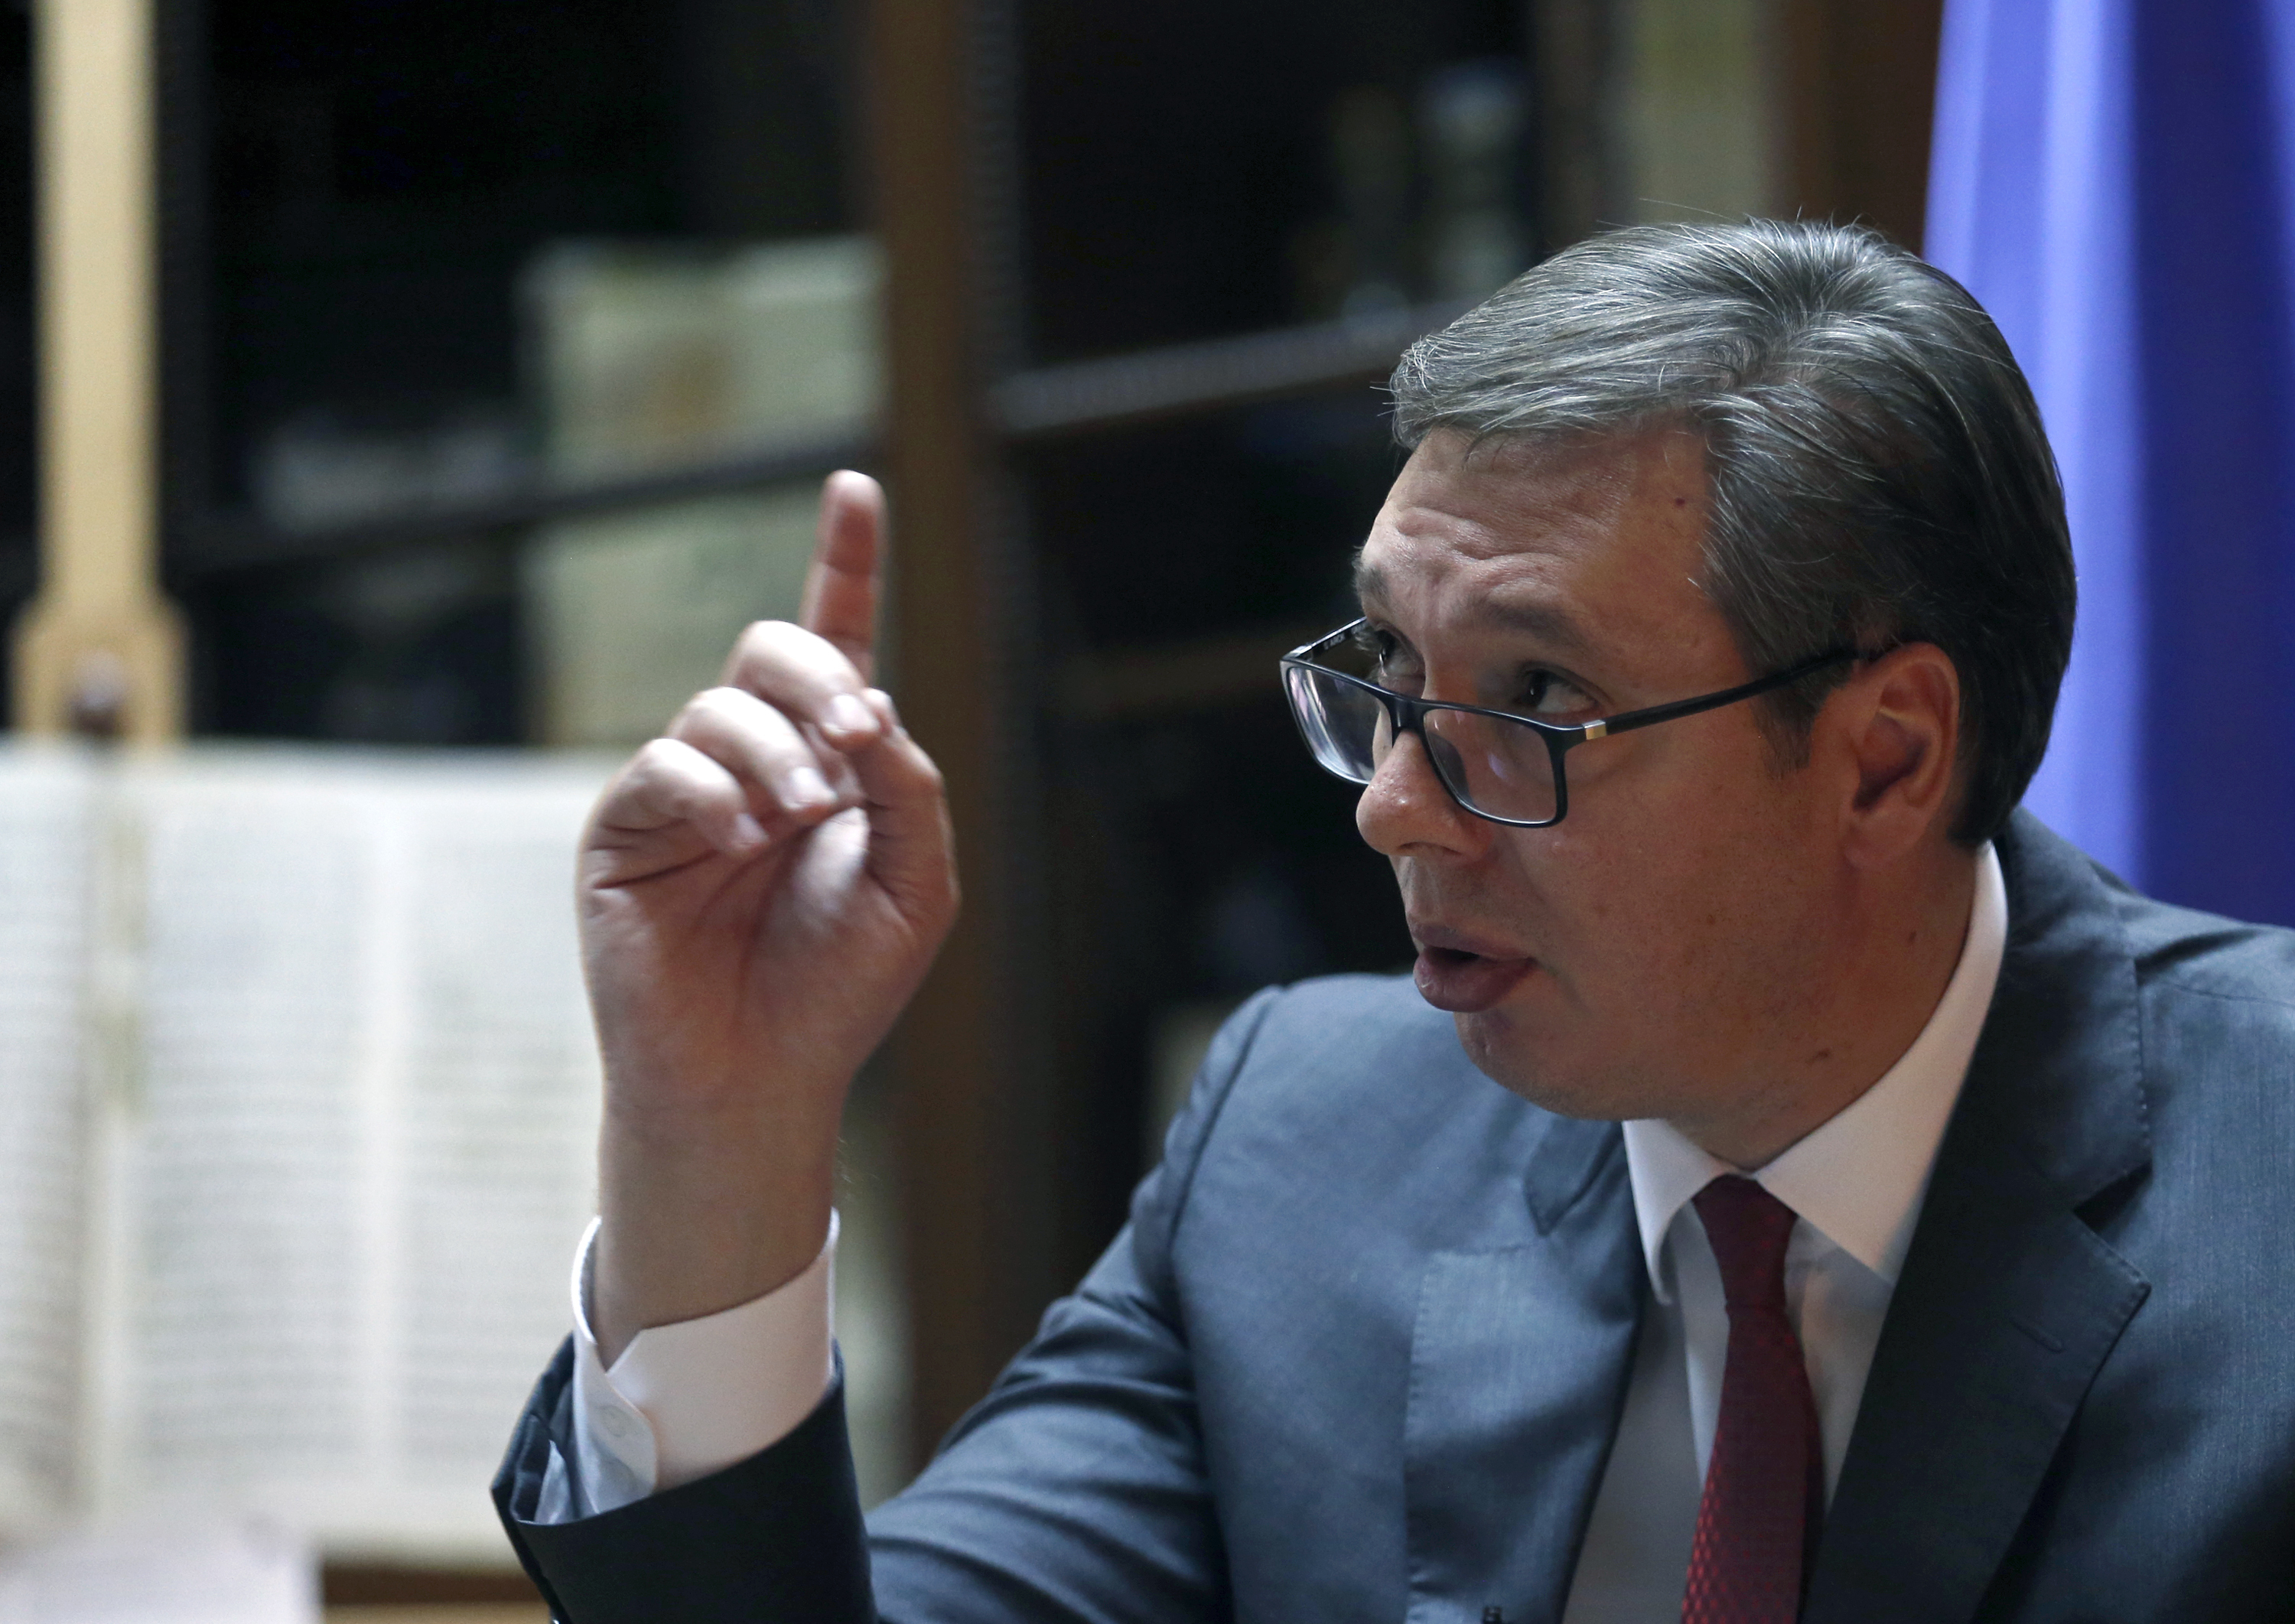 Serbian President Aleksandar Vucic speaks and gestures during an interview to The Associated Press, in Belgrade, Serbia, Oct. 13, 2017.